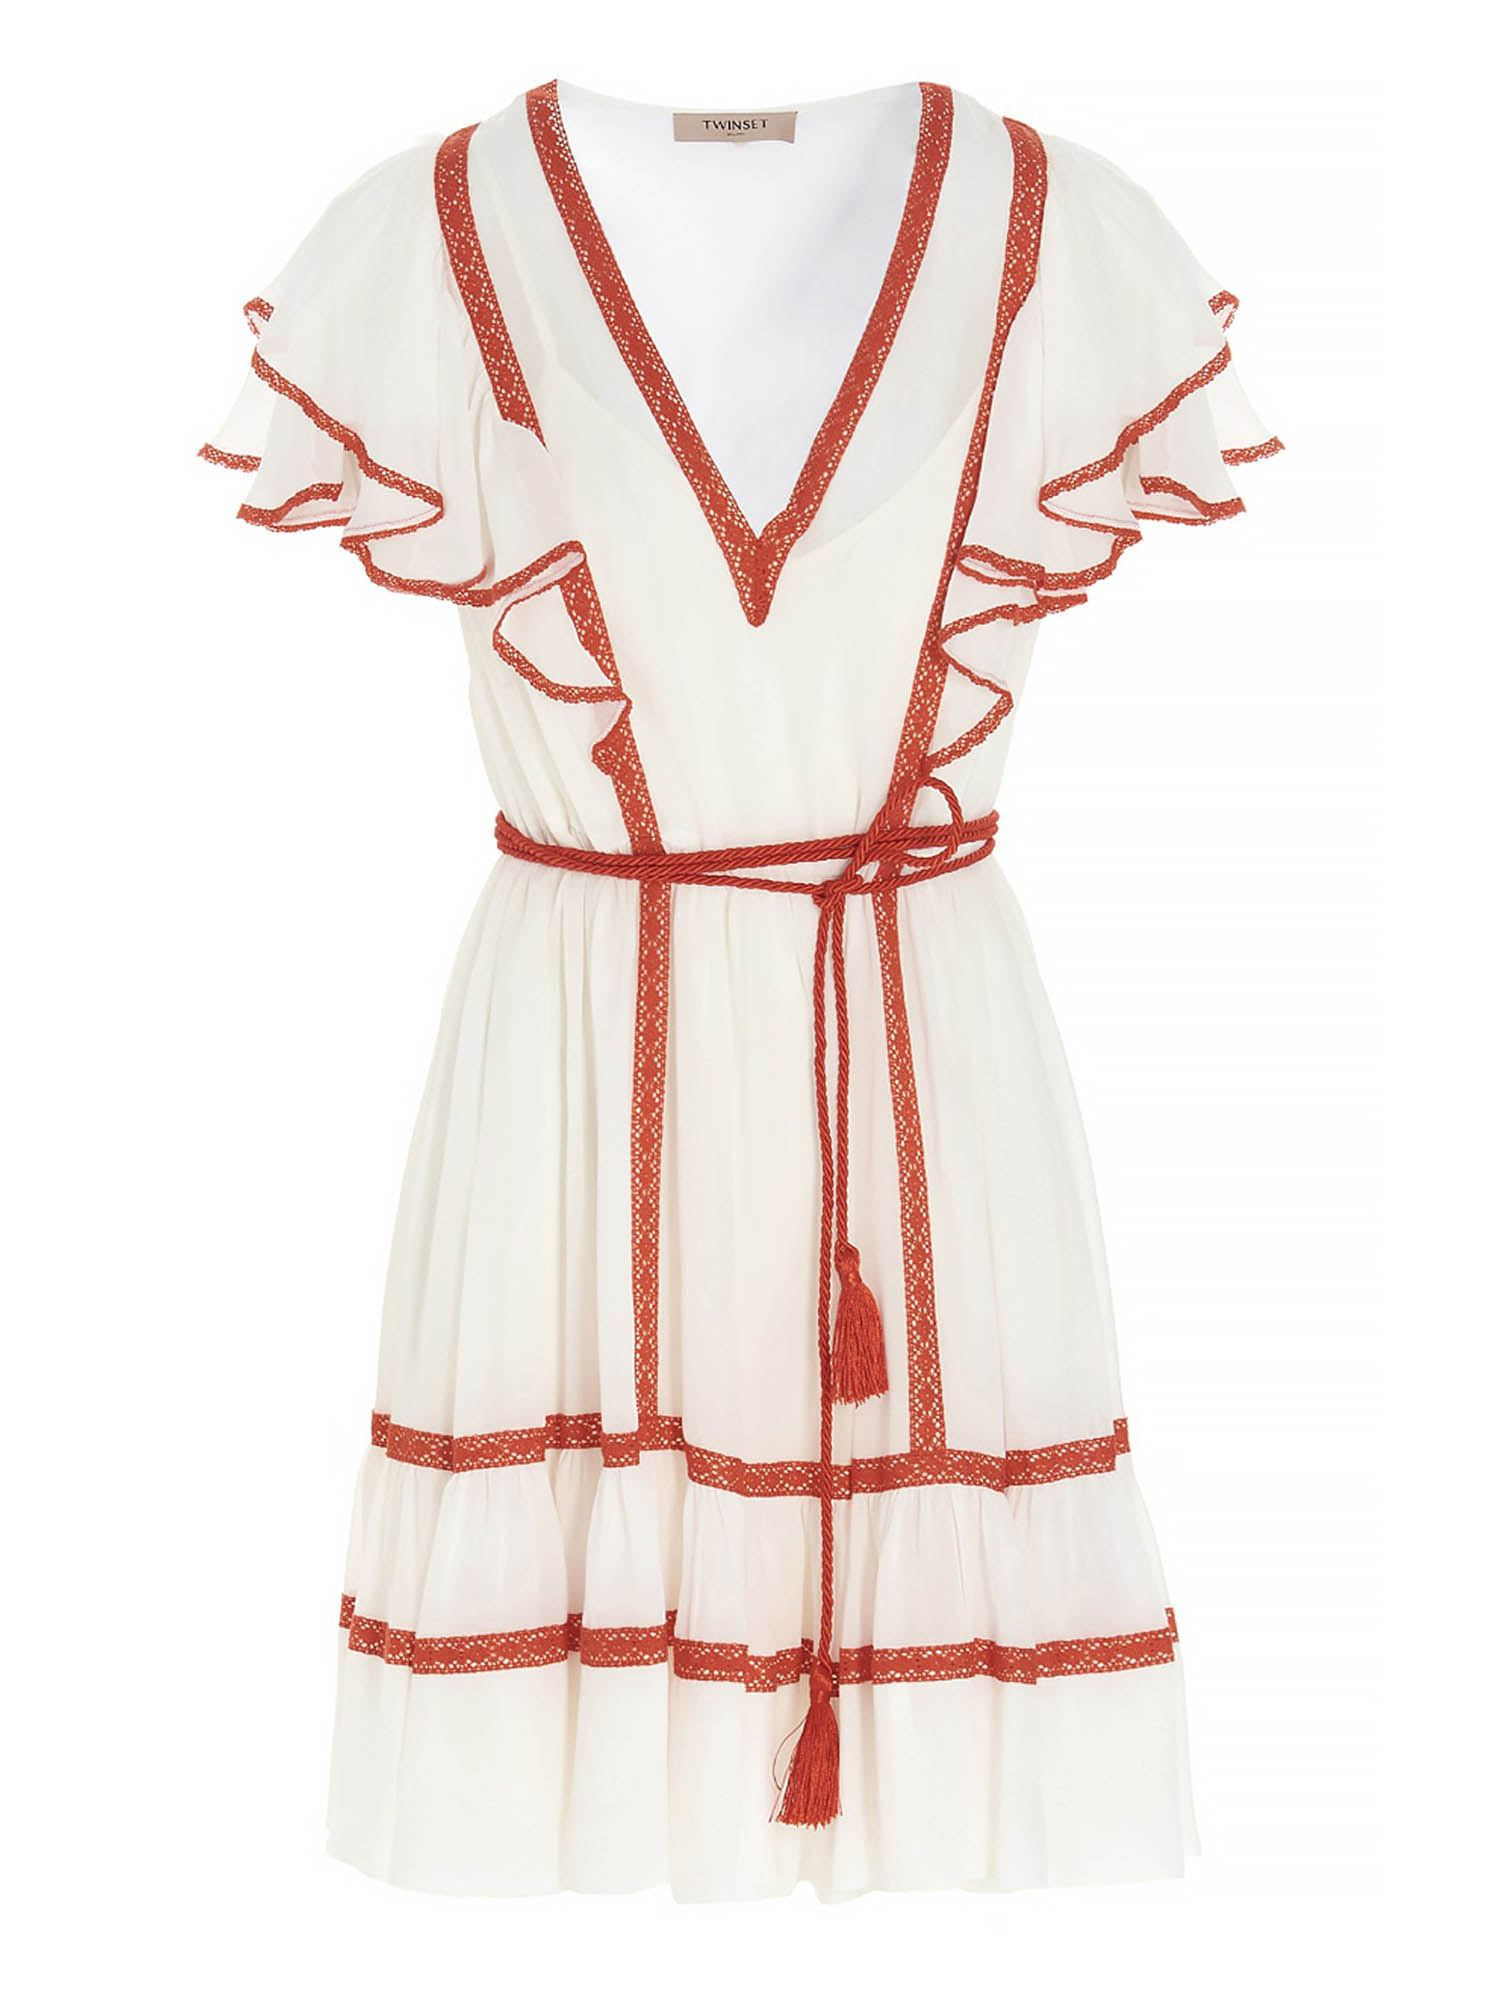 Twinset DRESS WITH TRIMMING INSERT IN WHITE